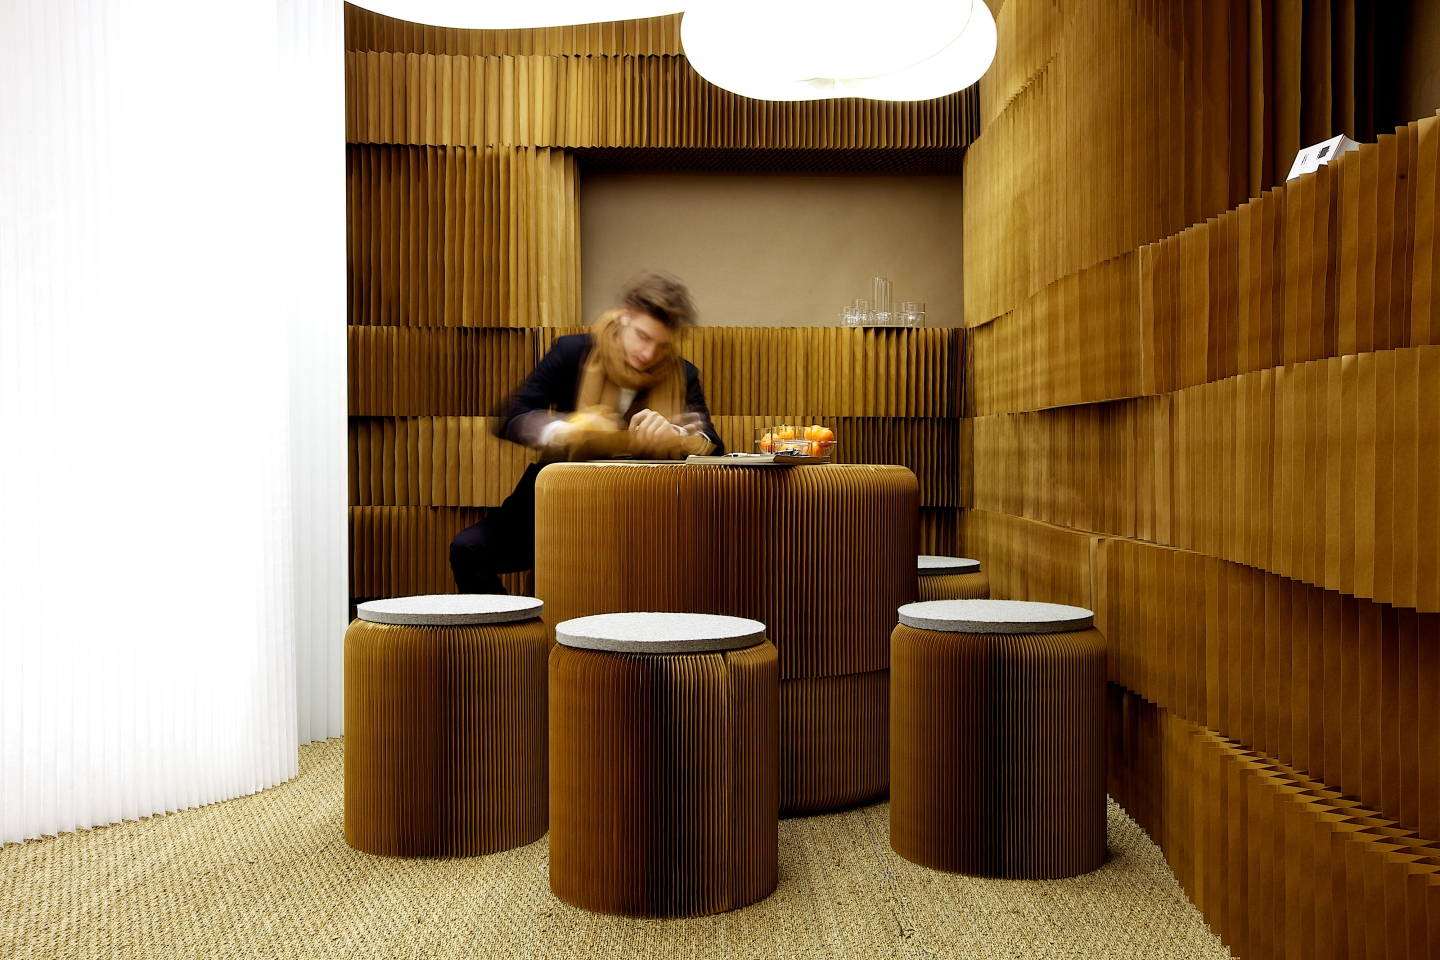 portable paper stool by molo - a man sits at a table made from stacked paper softseating, surrounded by paper softblocks and molo's lighting elements.